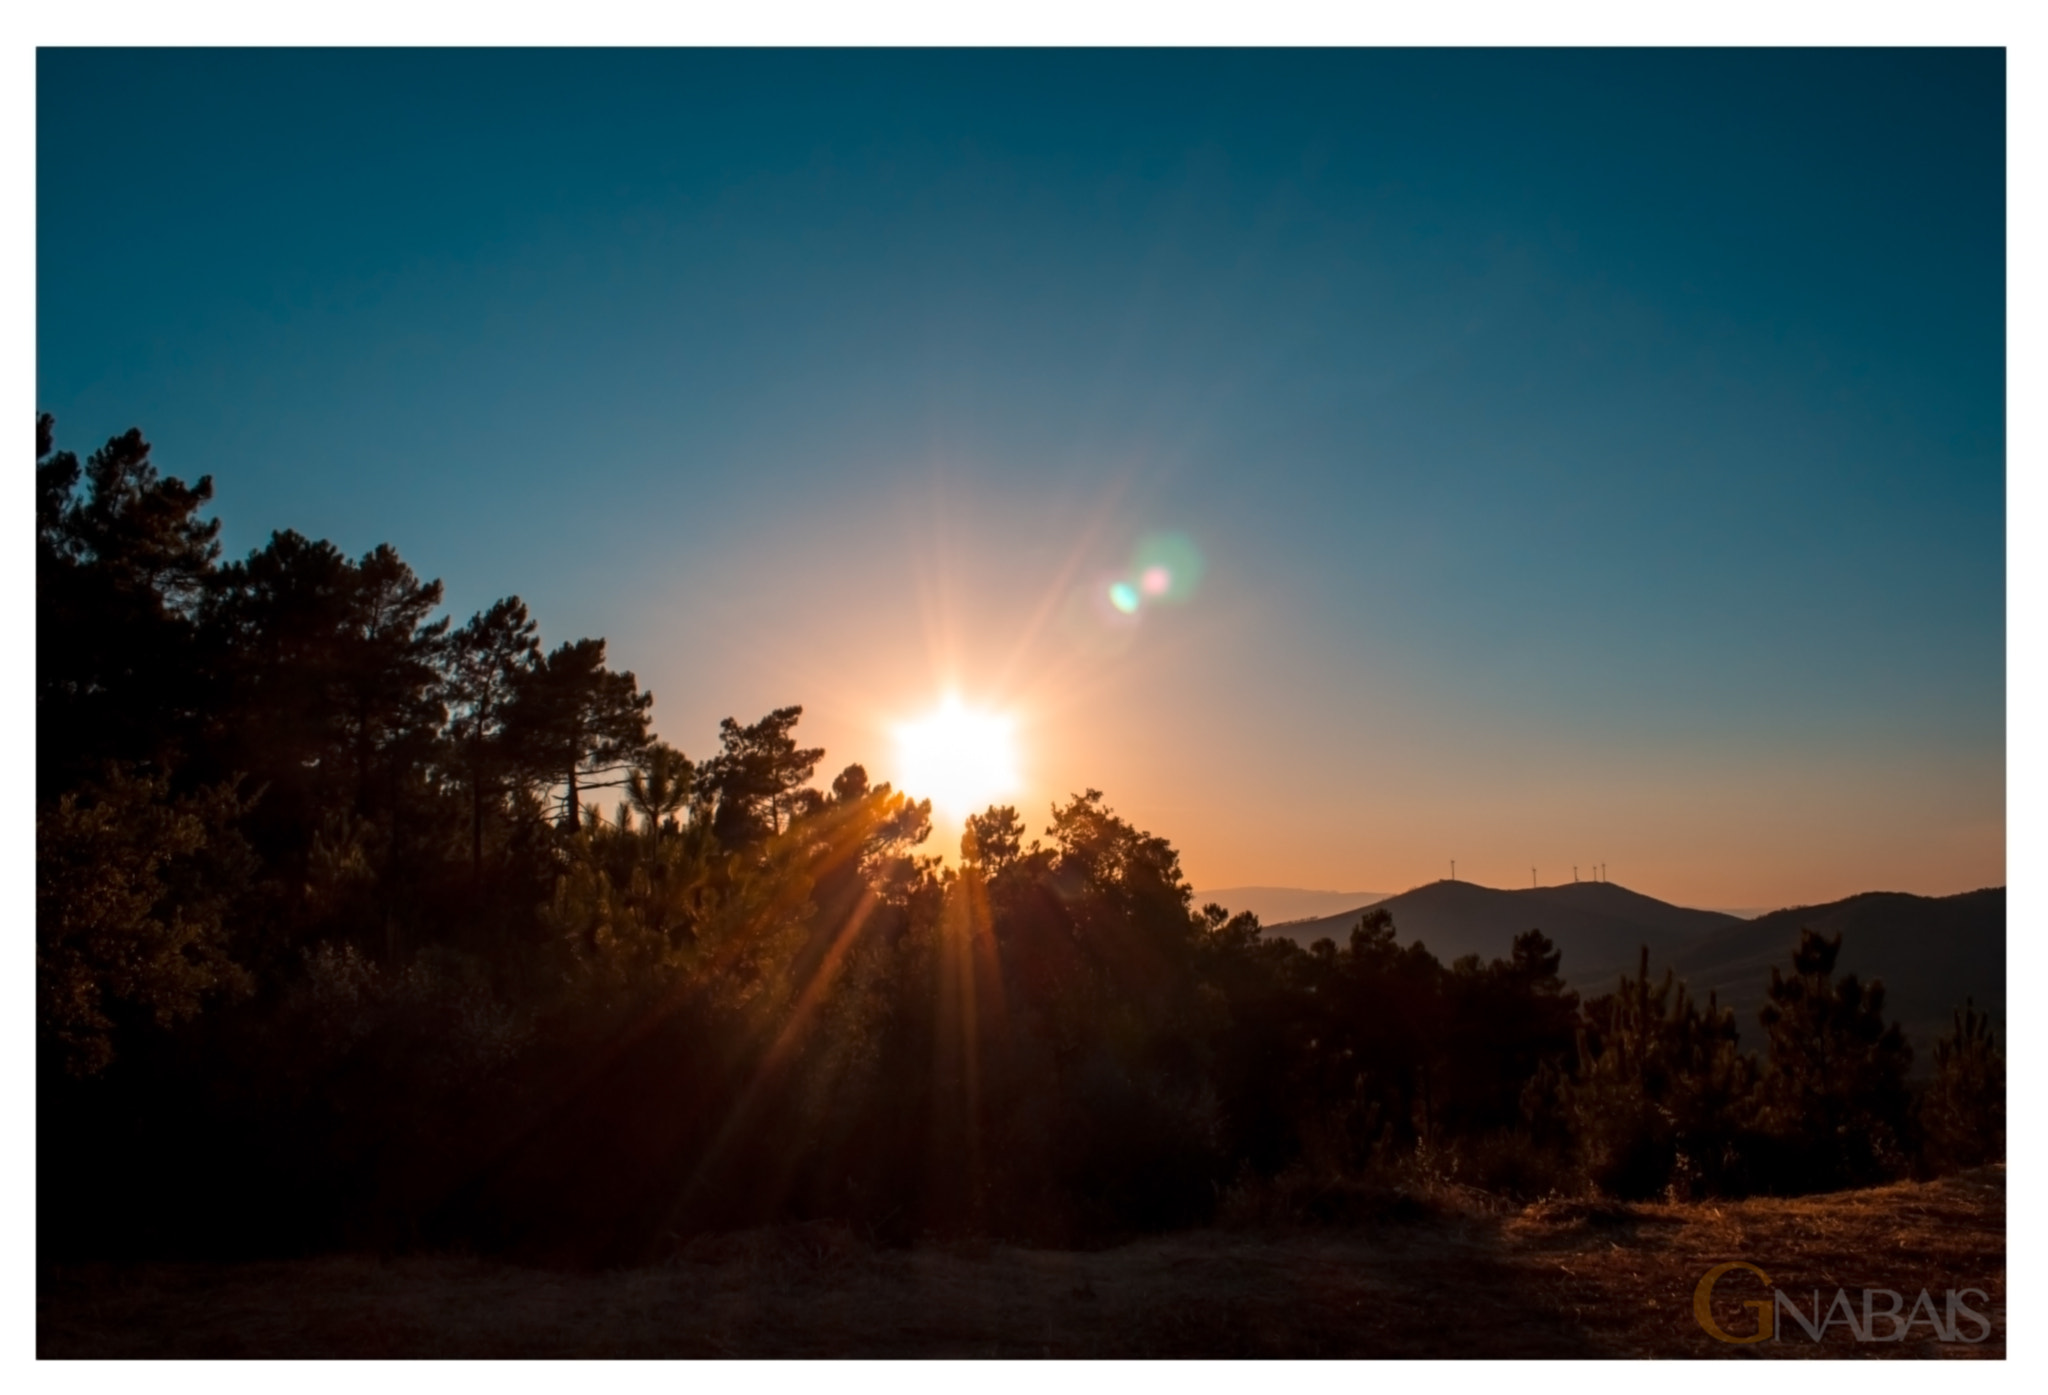 Photograph Perfect Sunset by Gonçalo Nabais on 500px